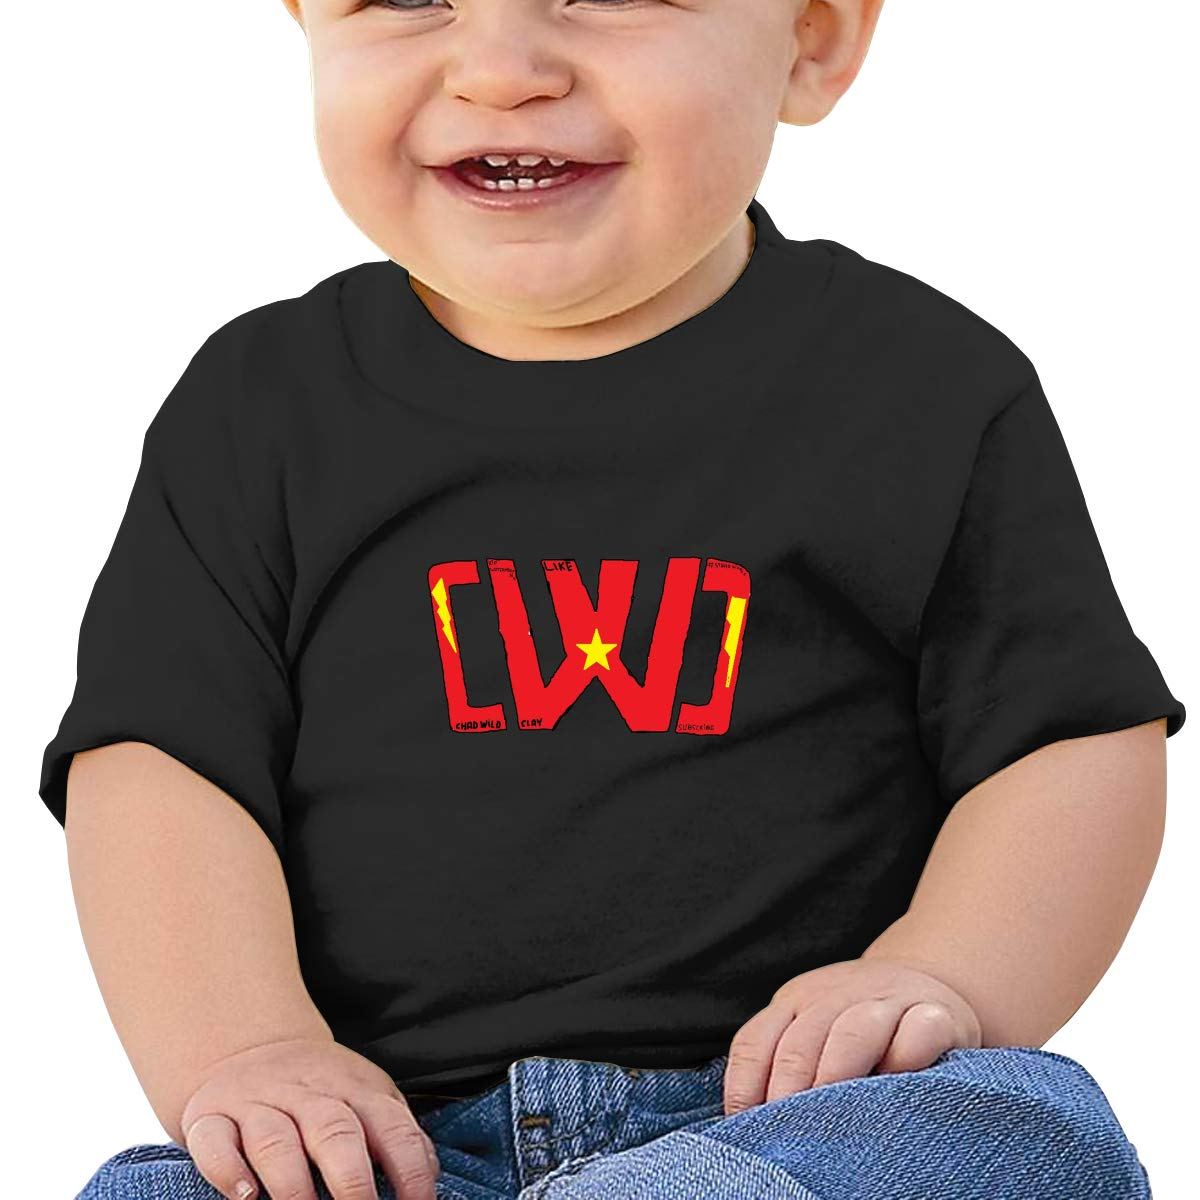 MONIKAL Unisex Infant Short Sleeve T-Shirt CWC Chad Wild Clay Ninja Toddler Kids Organic Cotton Graphic Tee Tops